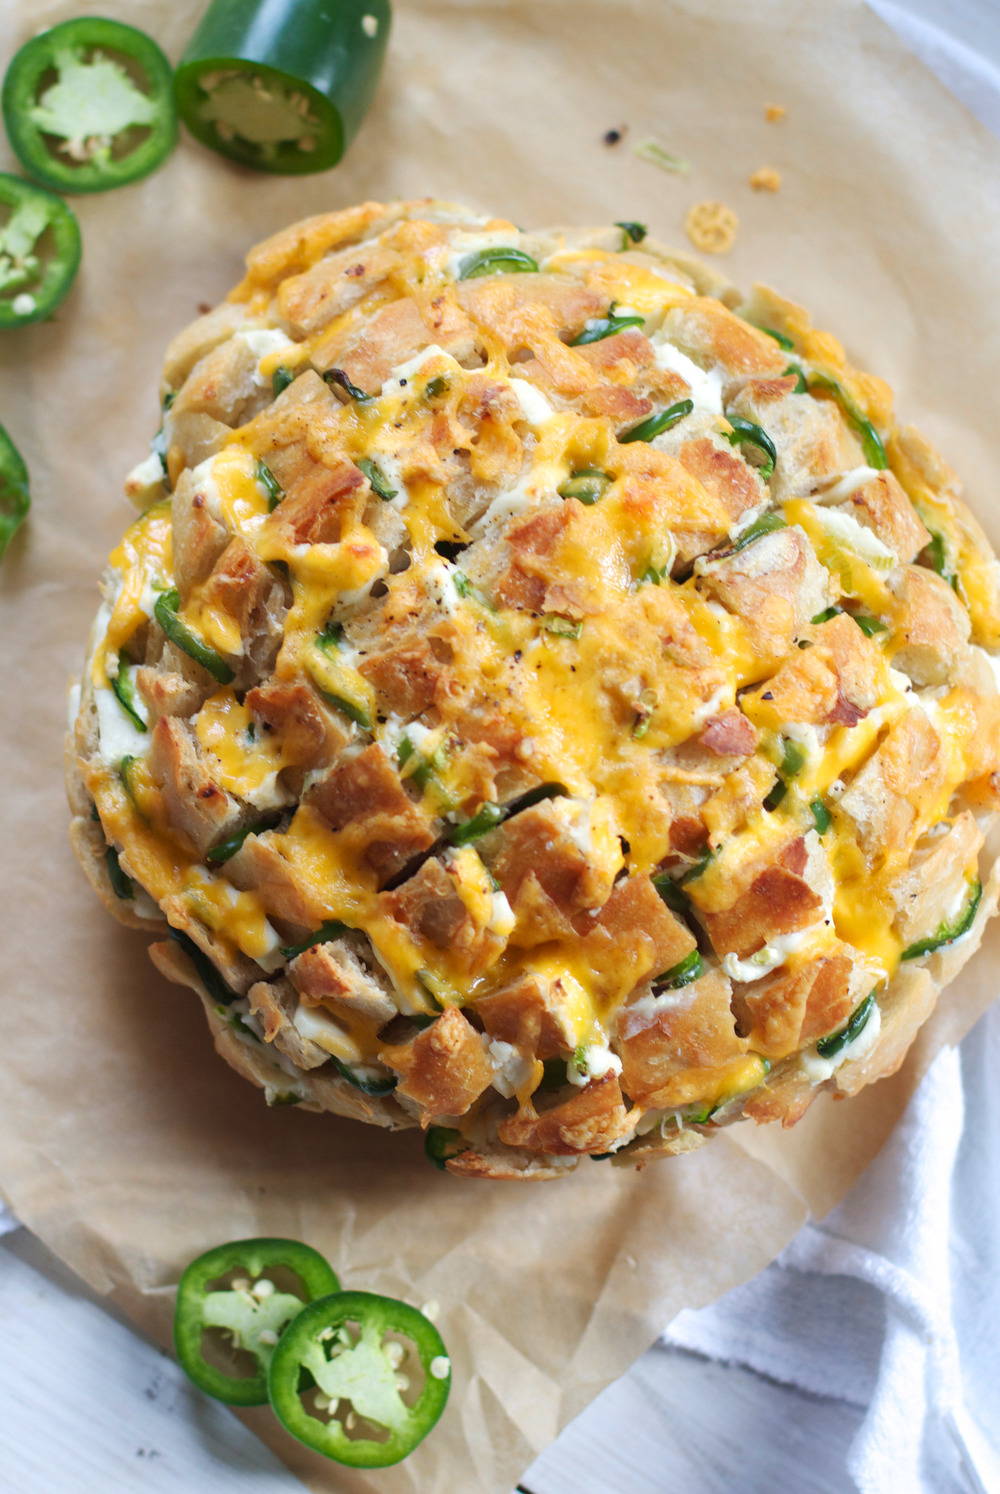 http-::www.the-baker-chick.com:wp-content:uploads:2014:09:jalapenopopperbread.jpg